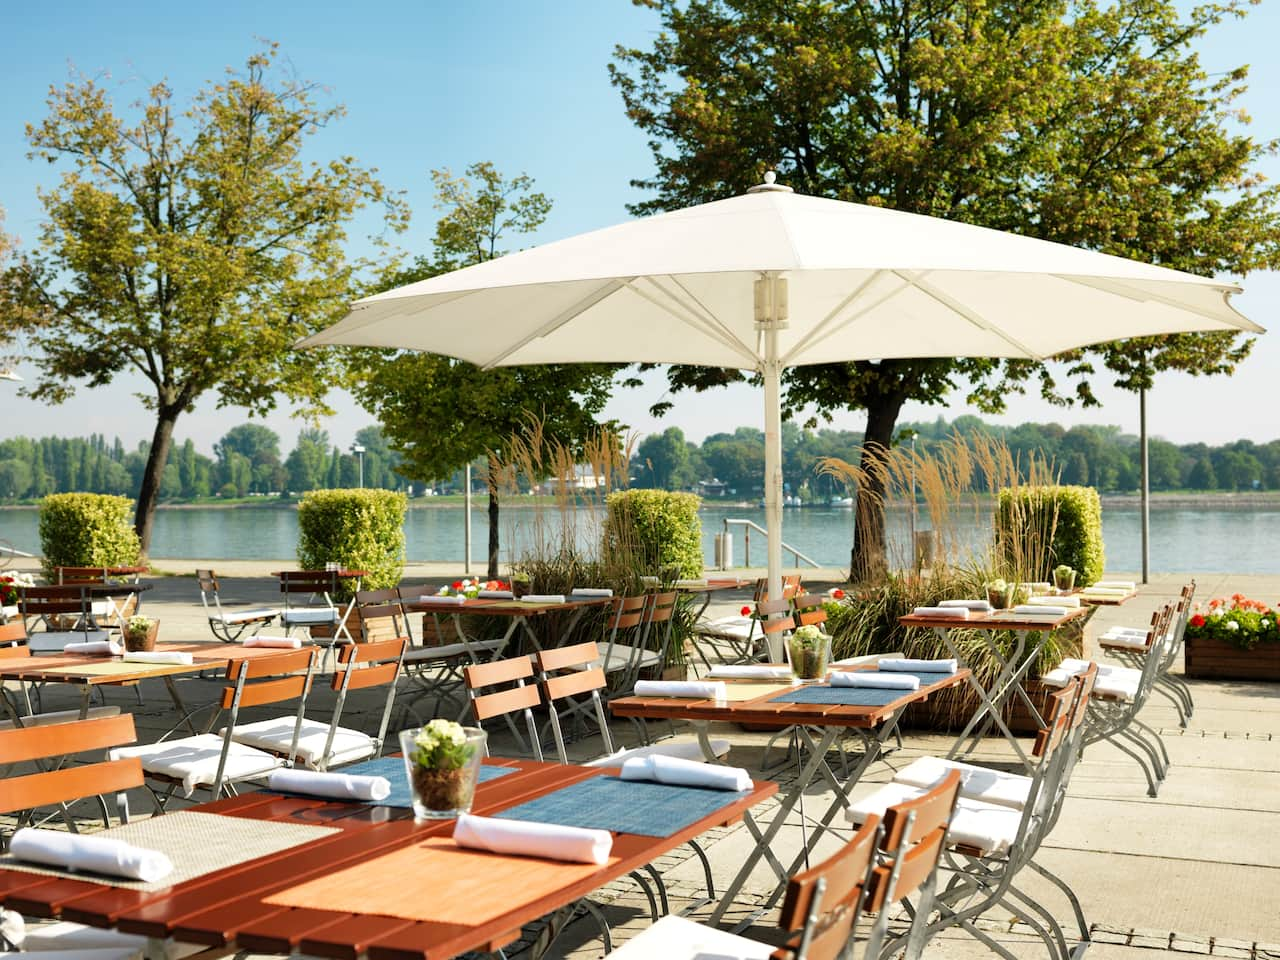 Rheintochter Terrace at Hyatt Regency Mainz